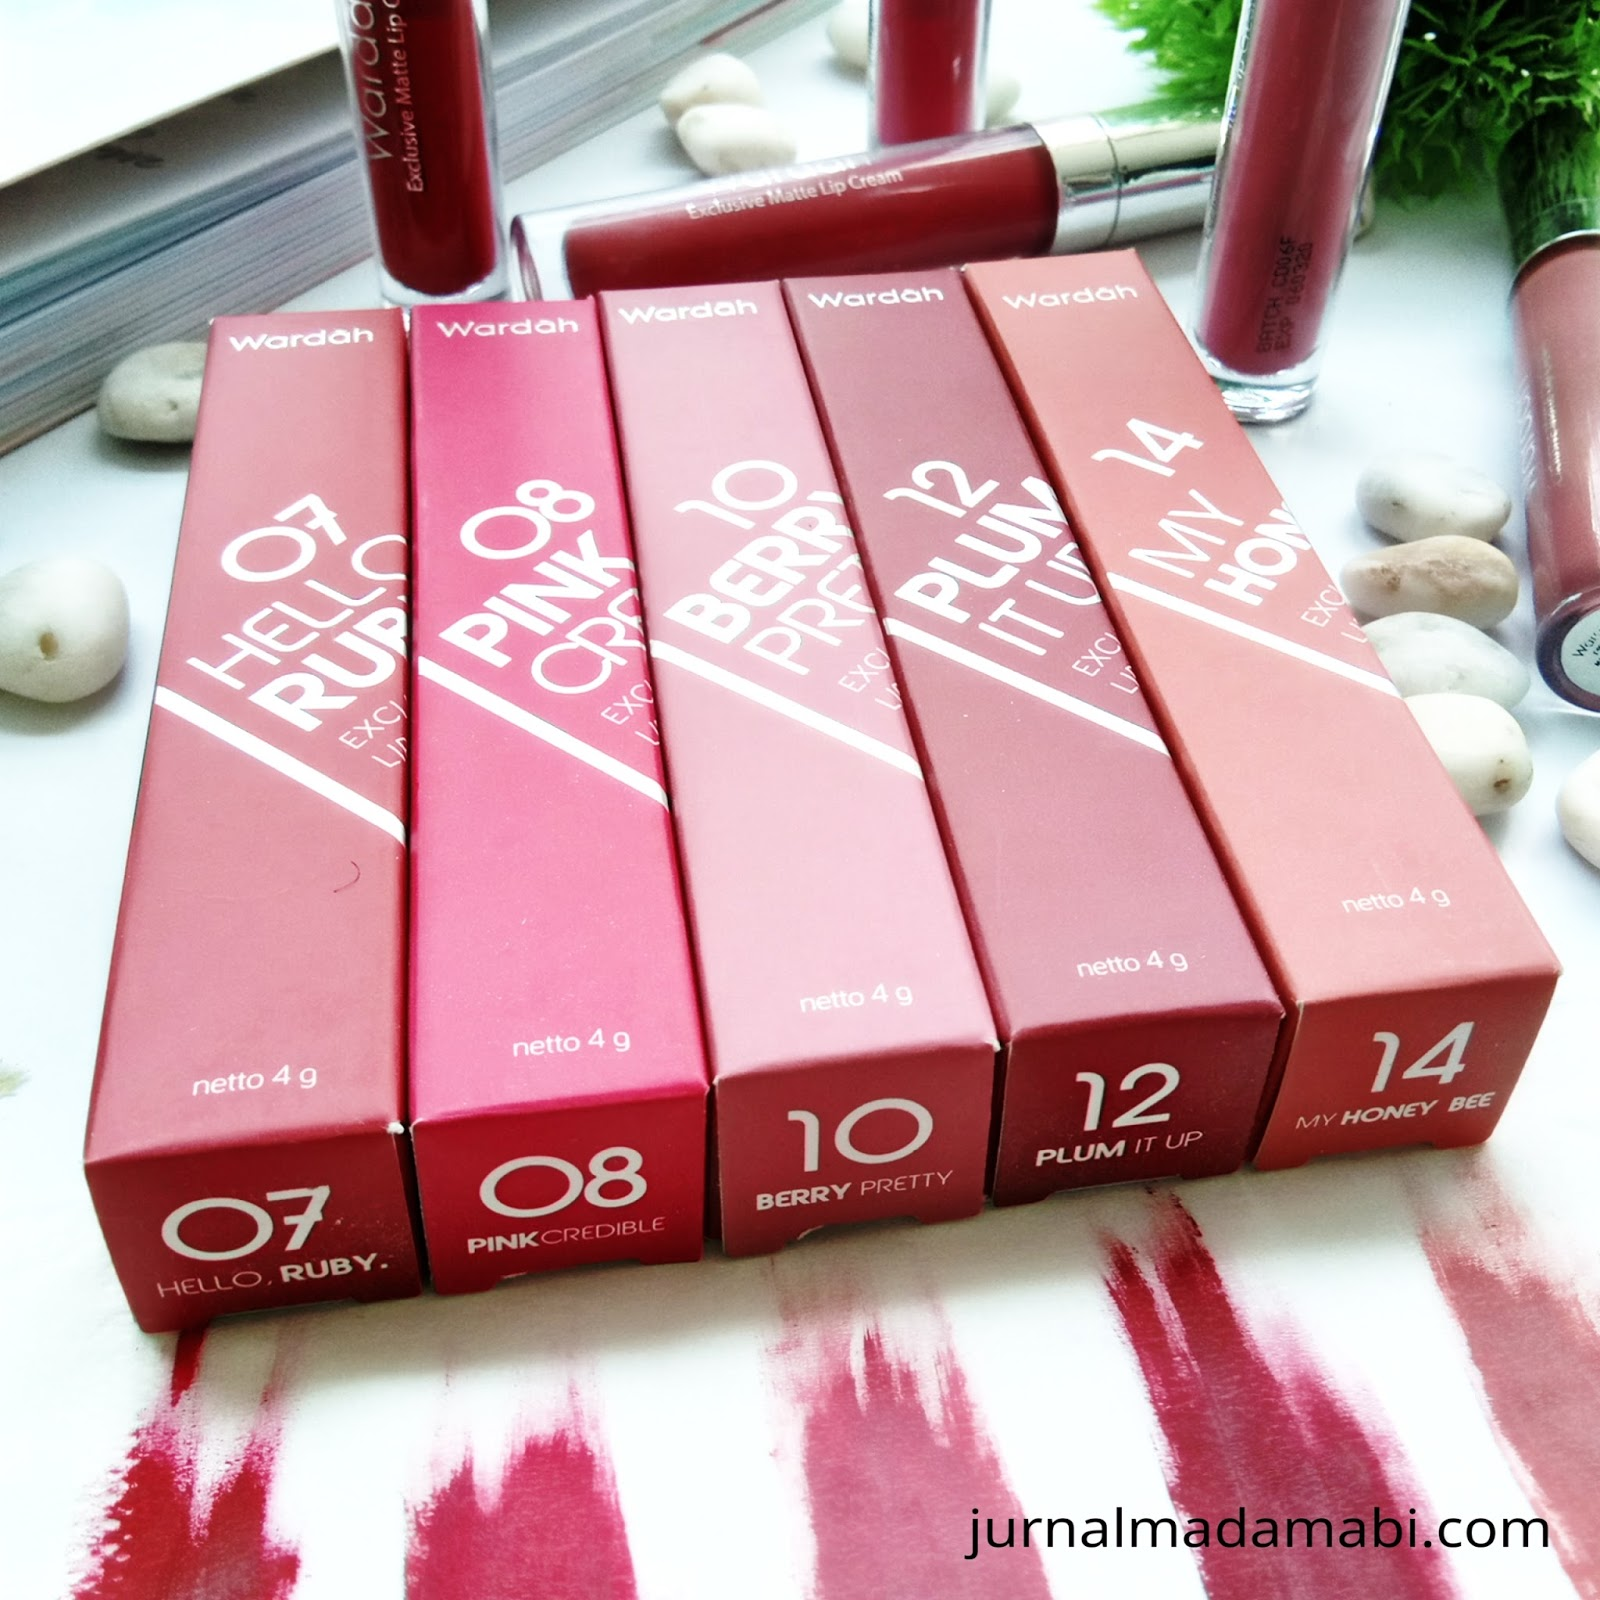 Jual Wardah Exclusive Matte Lip Cream 16 Heart Beet 4 G Termurah Review Swatch 07 08 10 12 14